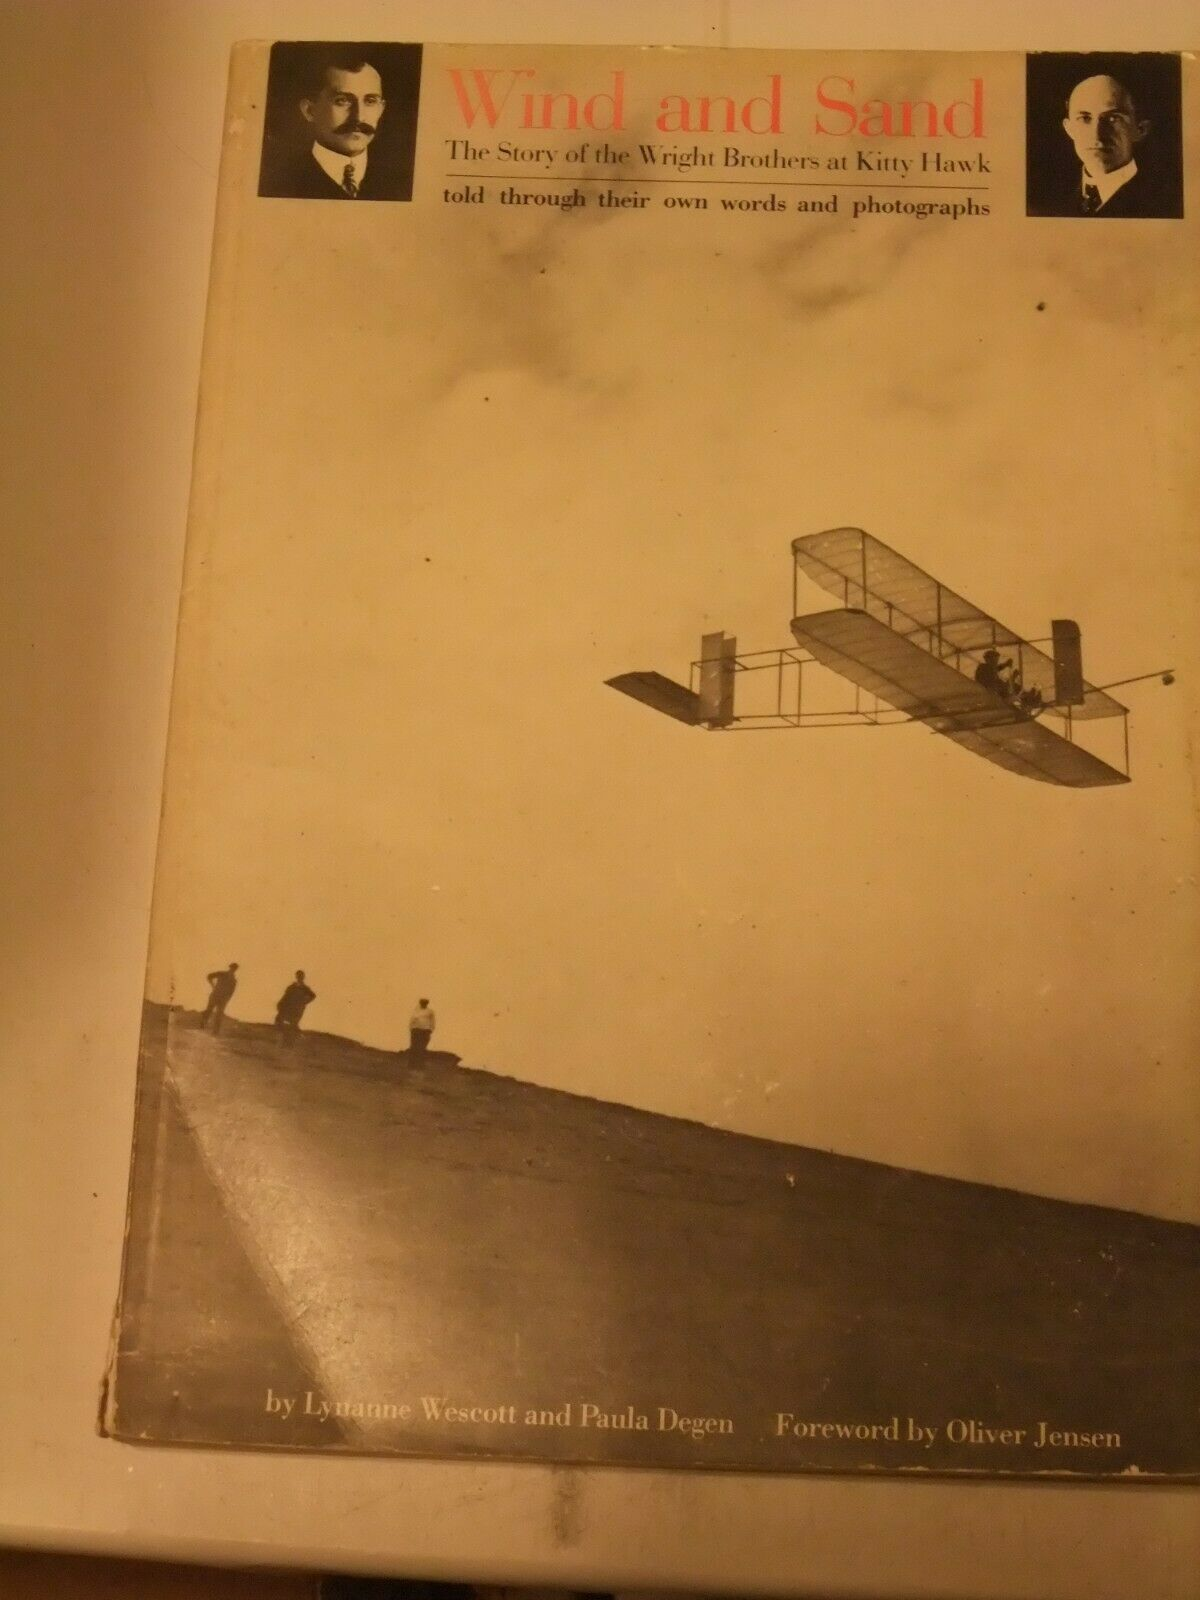 Primary image for Wind and Sand : Story of the Wright Brothers by Lynanne B. Wescott, Paula Degan